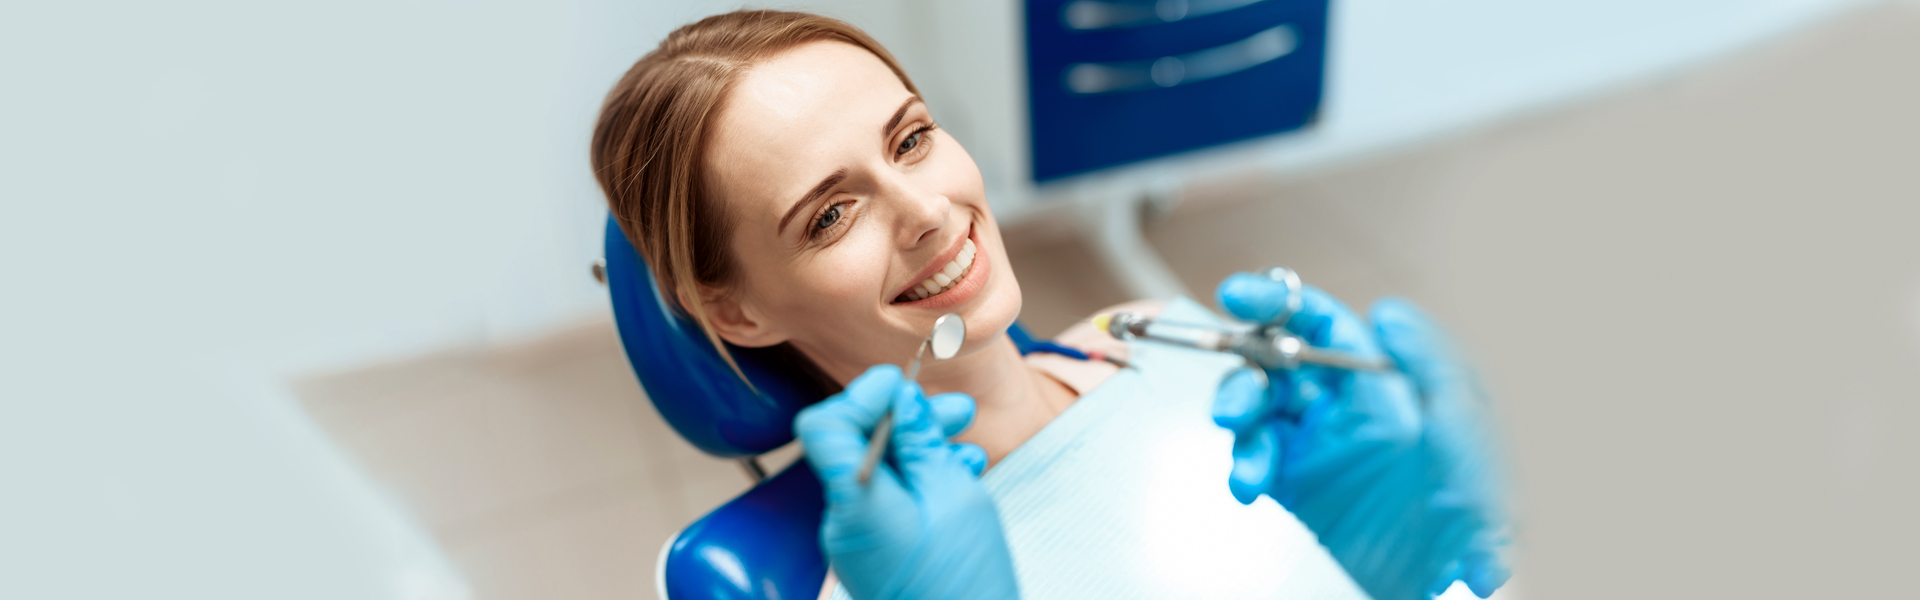 Basic Information About Oral Sedation in Milford, CT